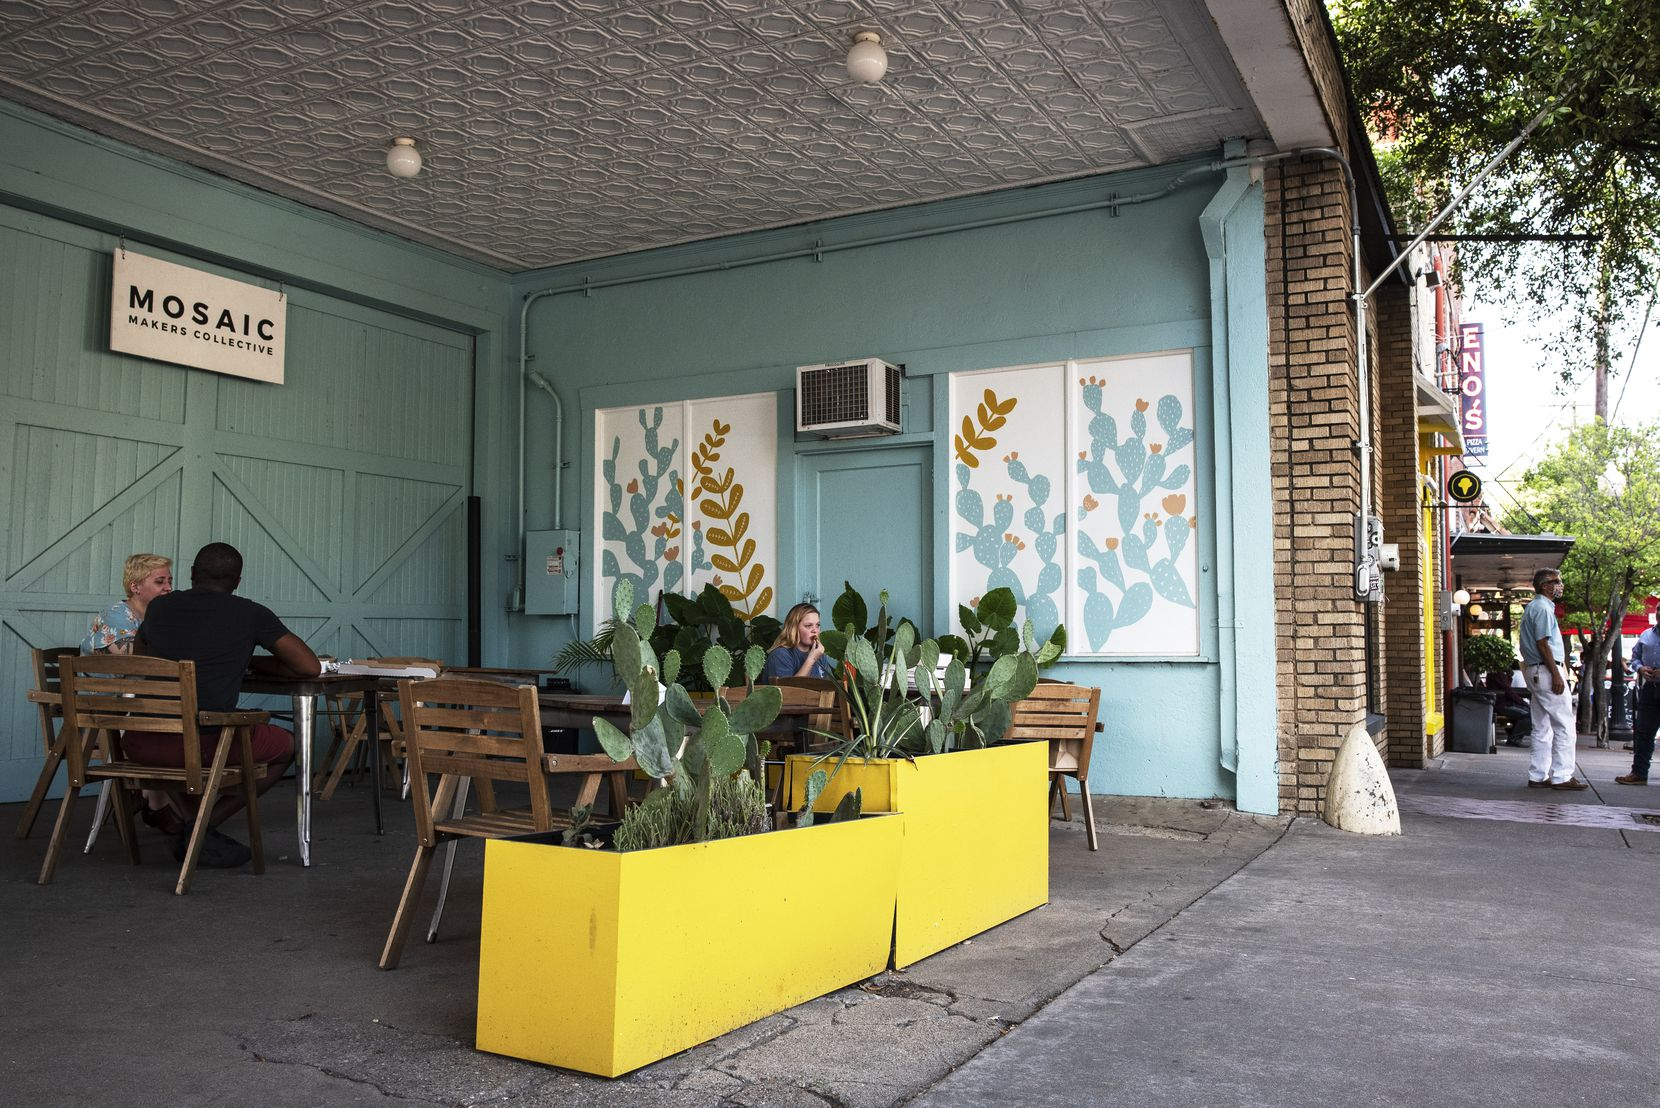 The current patio seating area for Eno's Pizza Tavern, outside of Mosaic Makers Collective as Mosaic remains closed for business, Friday, May 15, 2020 in Dallas. Shane Spillers, co-owner of the pizza tavern, said he plans to take the seating out onto the right of way as a sidewalk extension once Mosaic reopens.